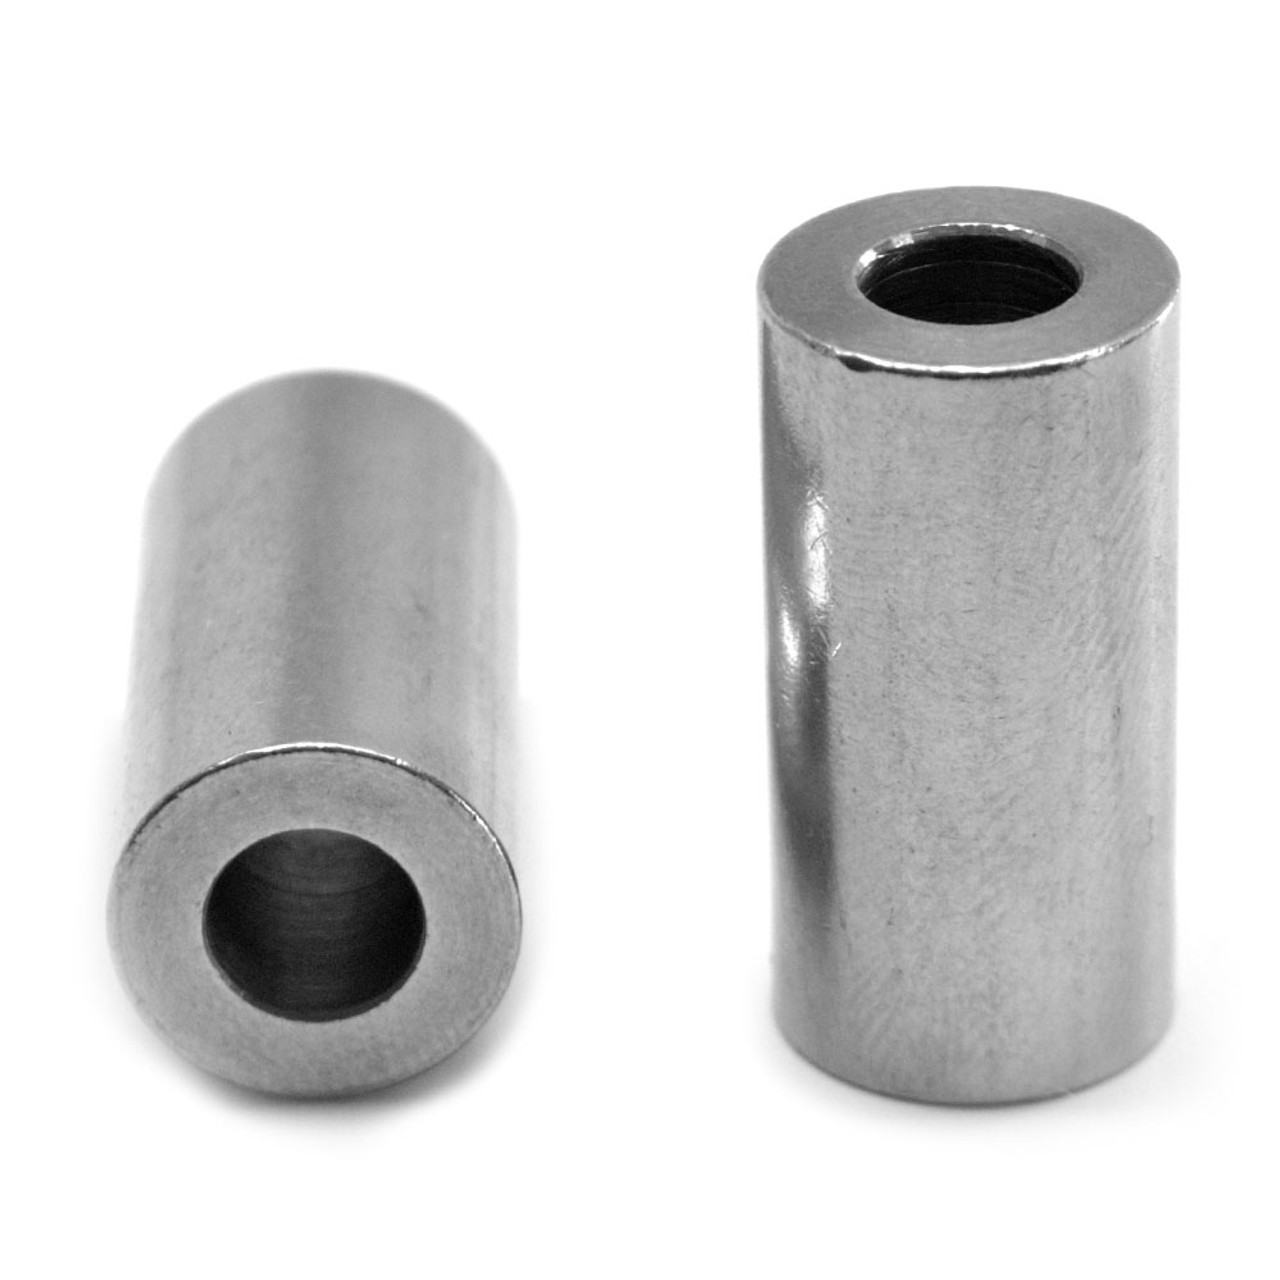 "#10 x 1 (1/2"") Round Spacer Stainless Steel 18-8"